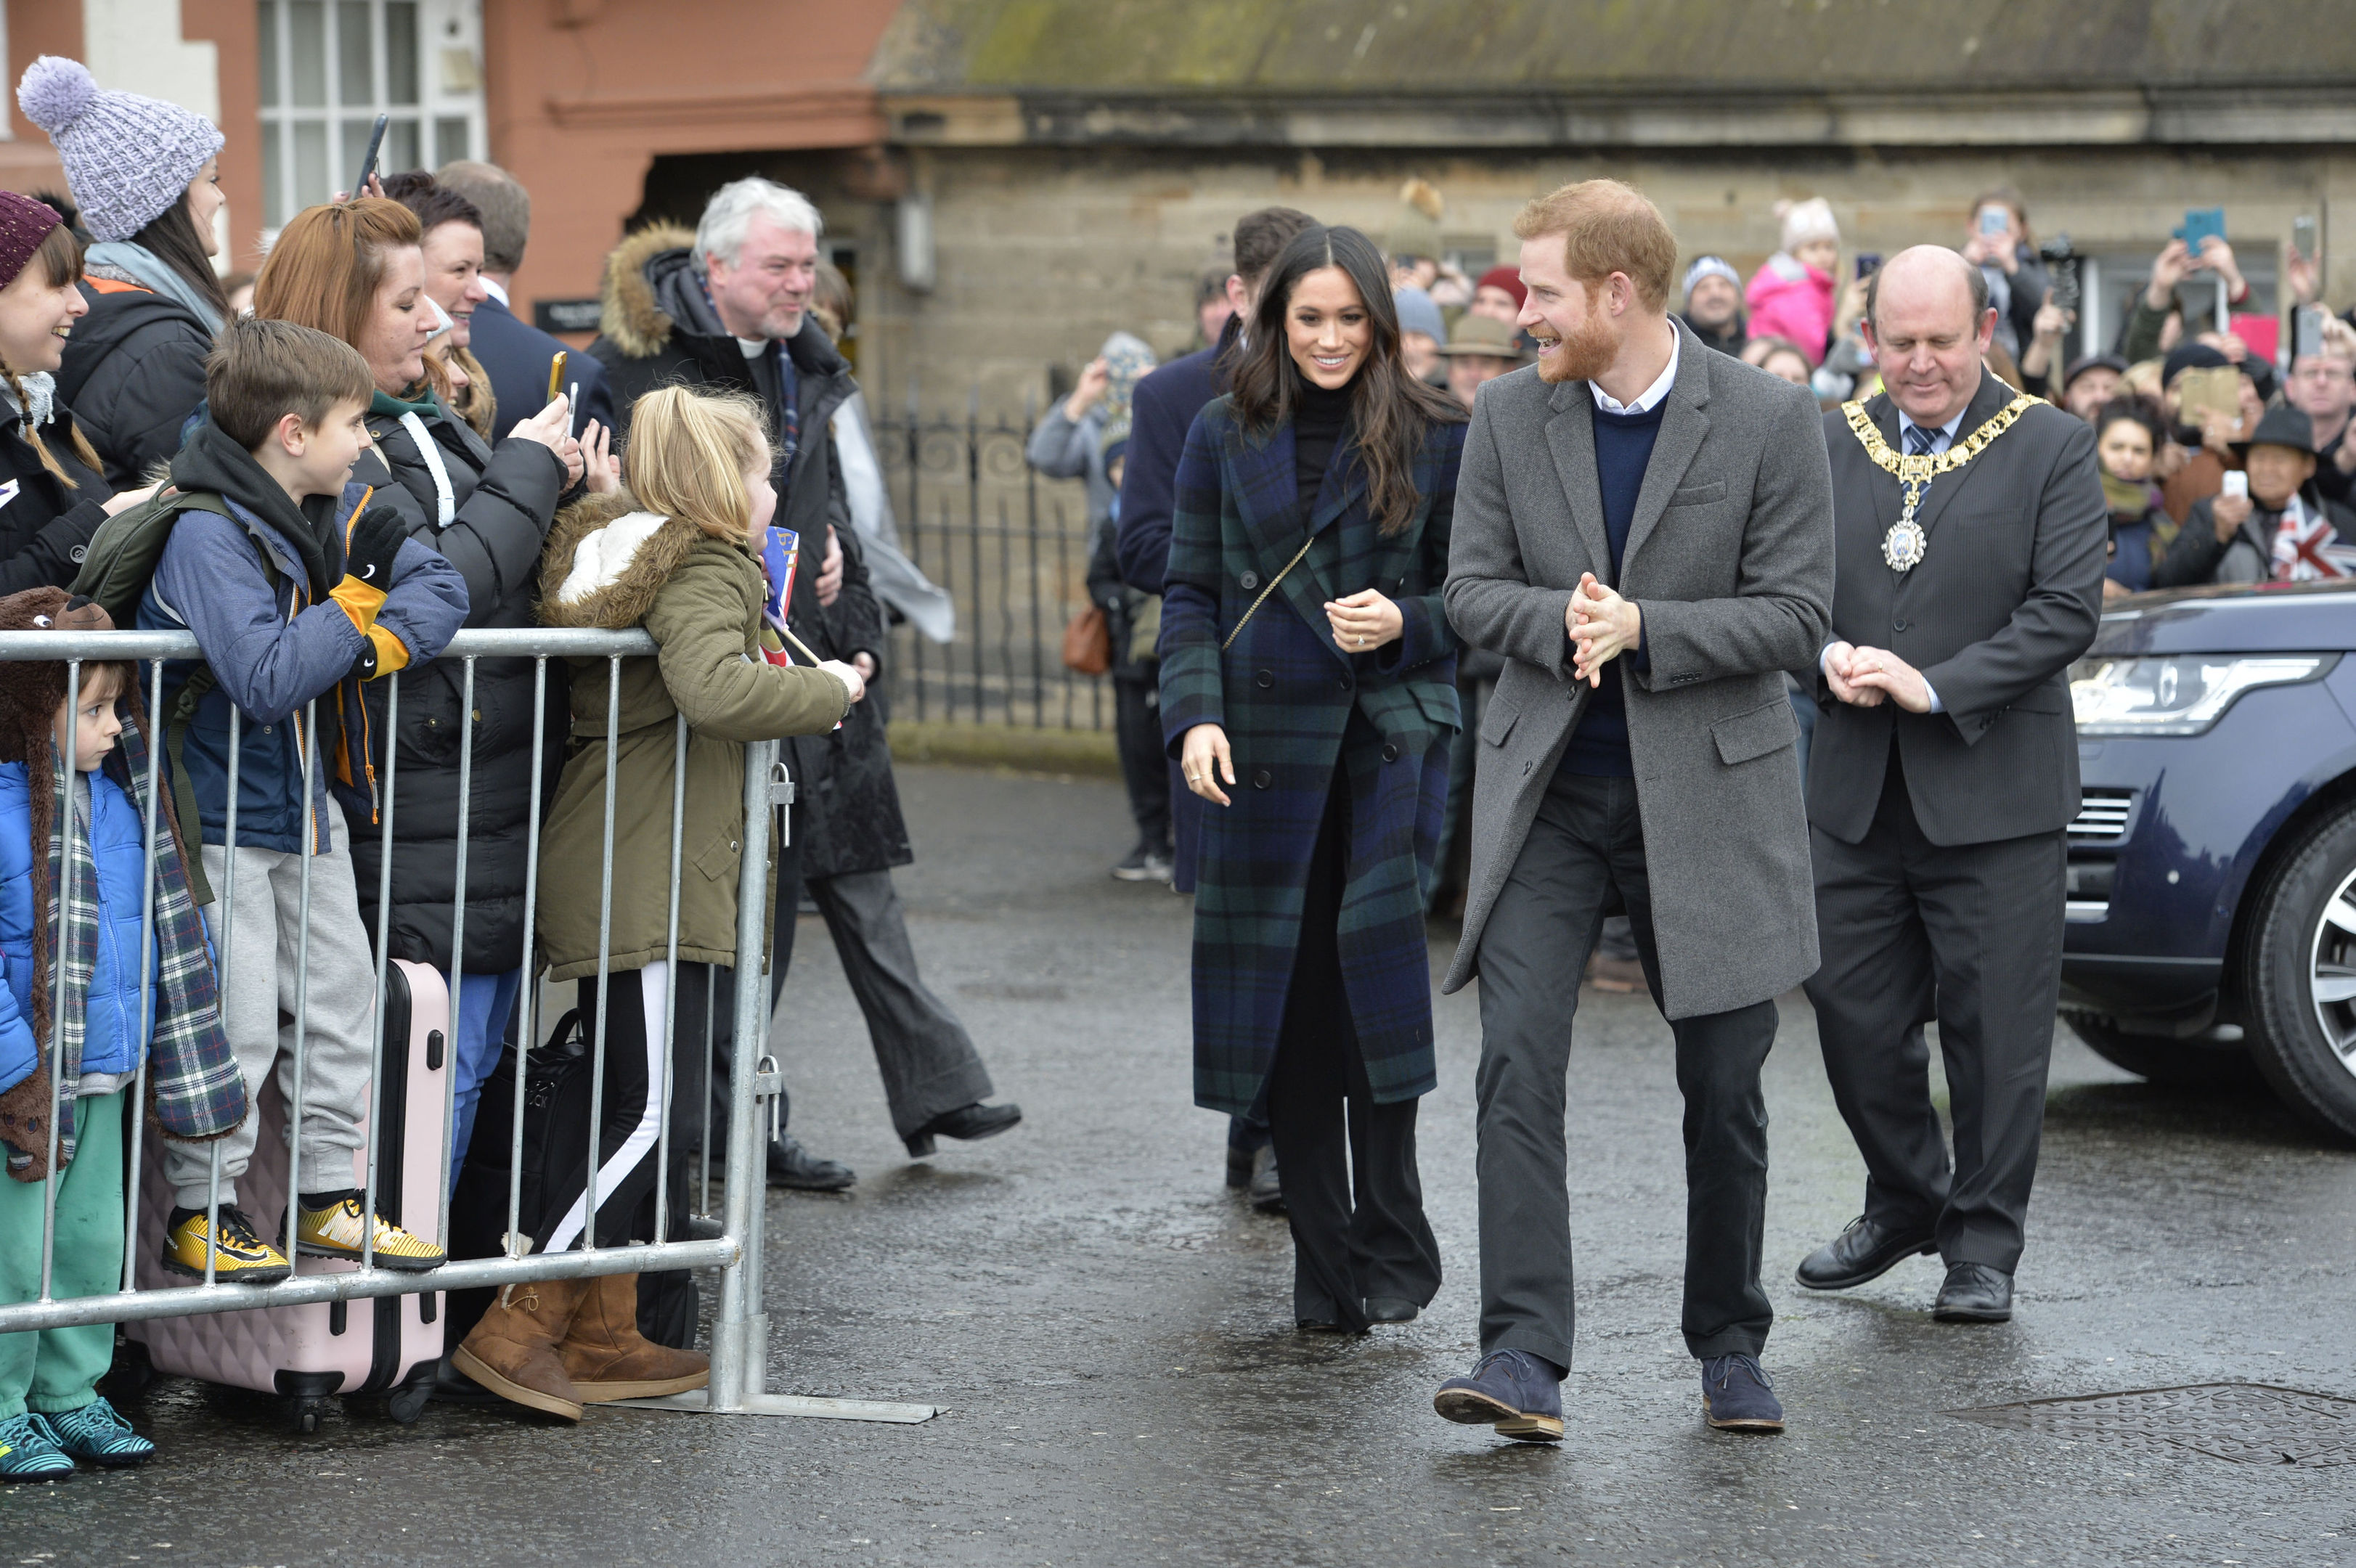 Prince Harry and Meghan Markle during a walkabout on the esplanade at Edinburgh Castle, during their visit to Scotland. (John Linton/PA Wire)